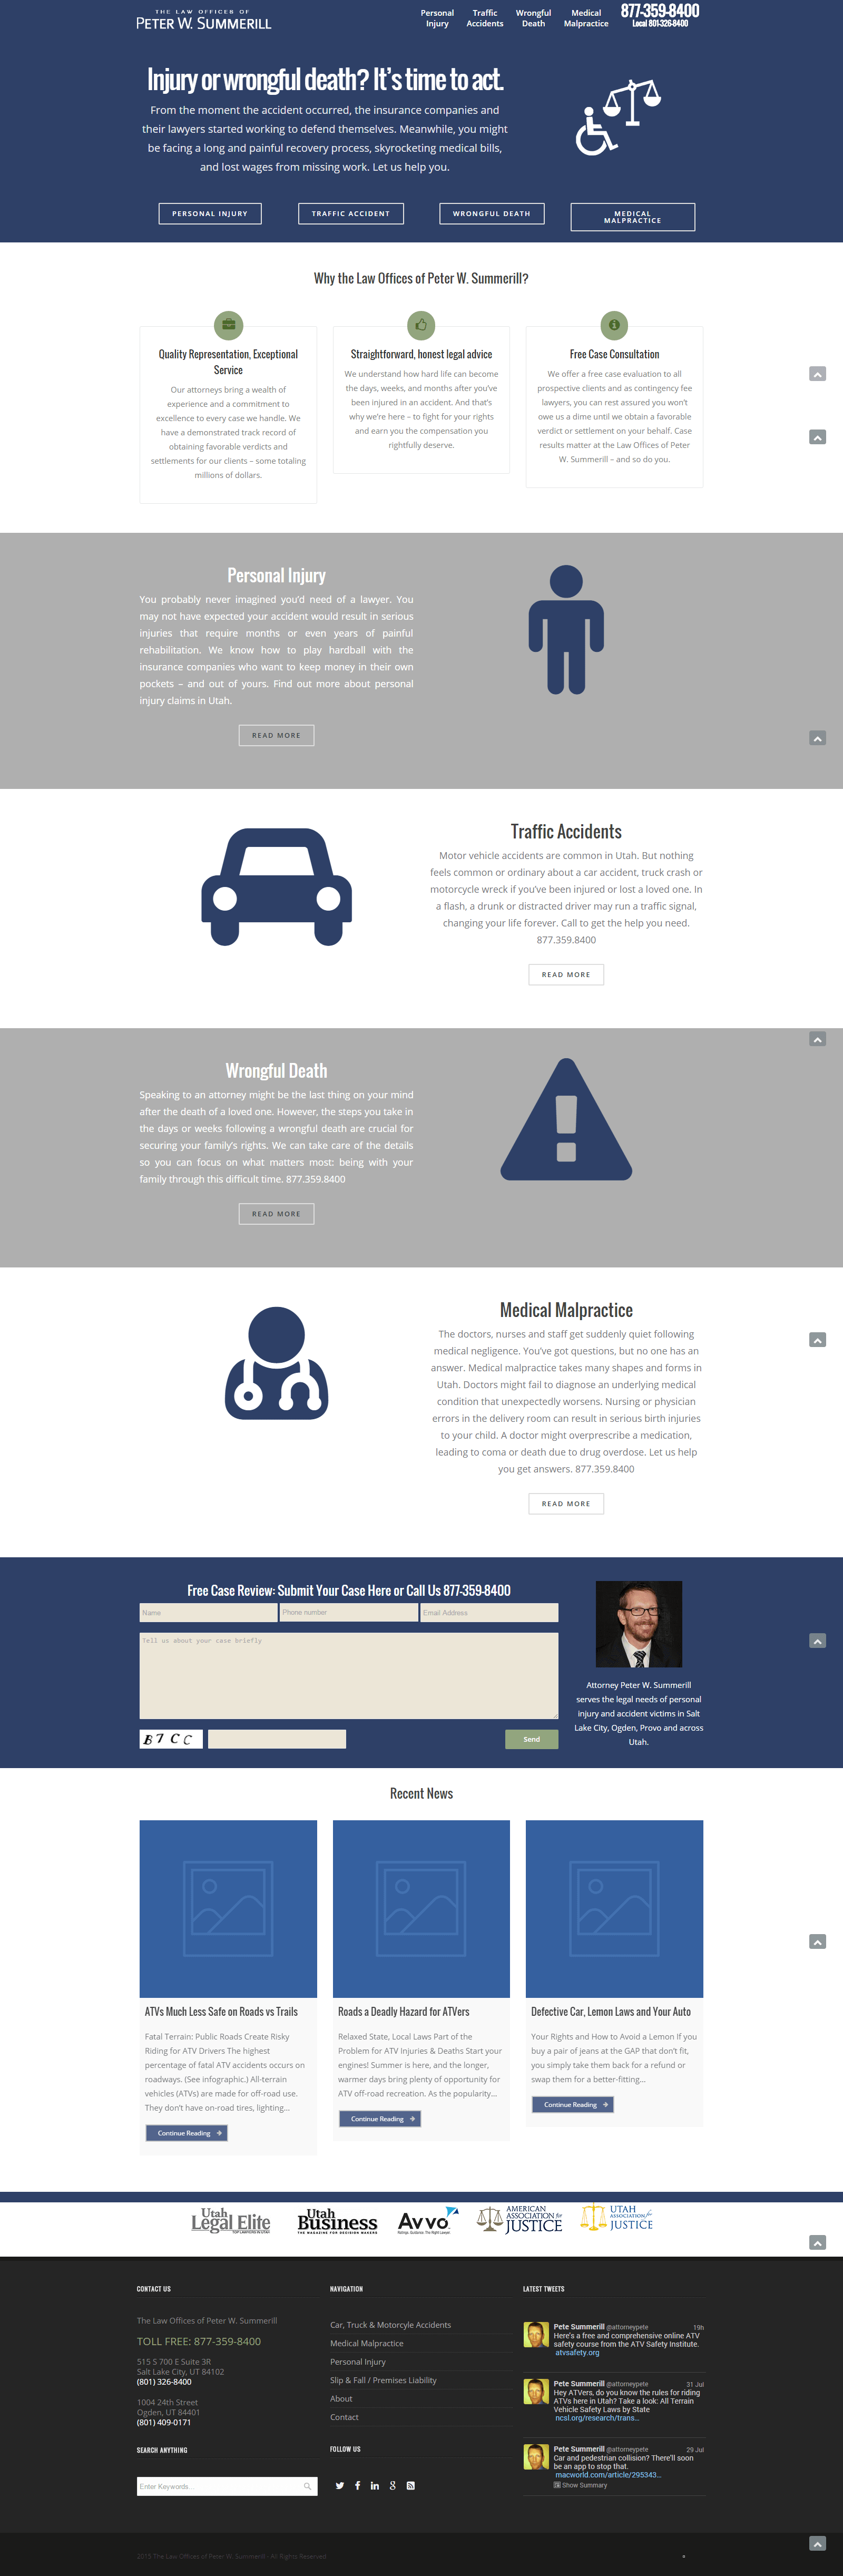 attorneysummerill - homepage